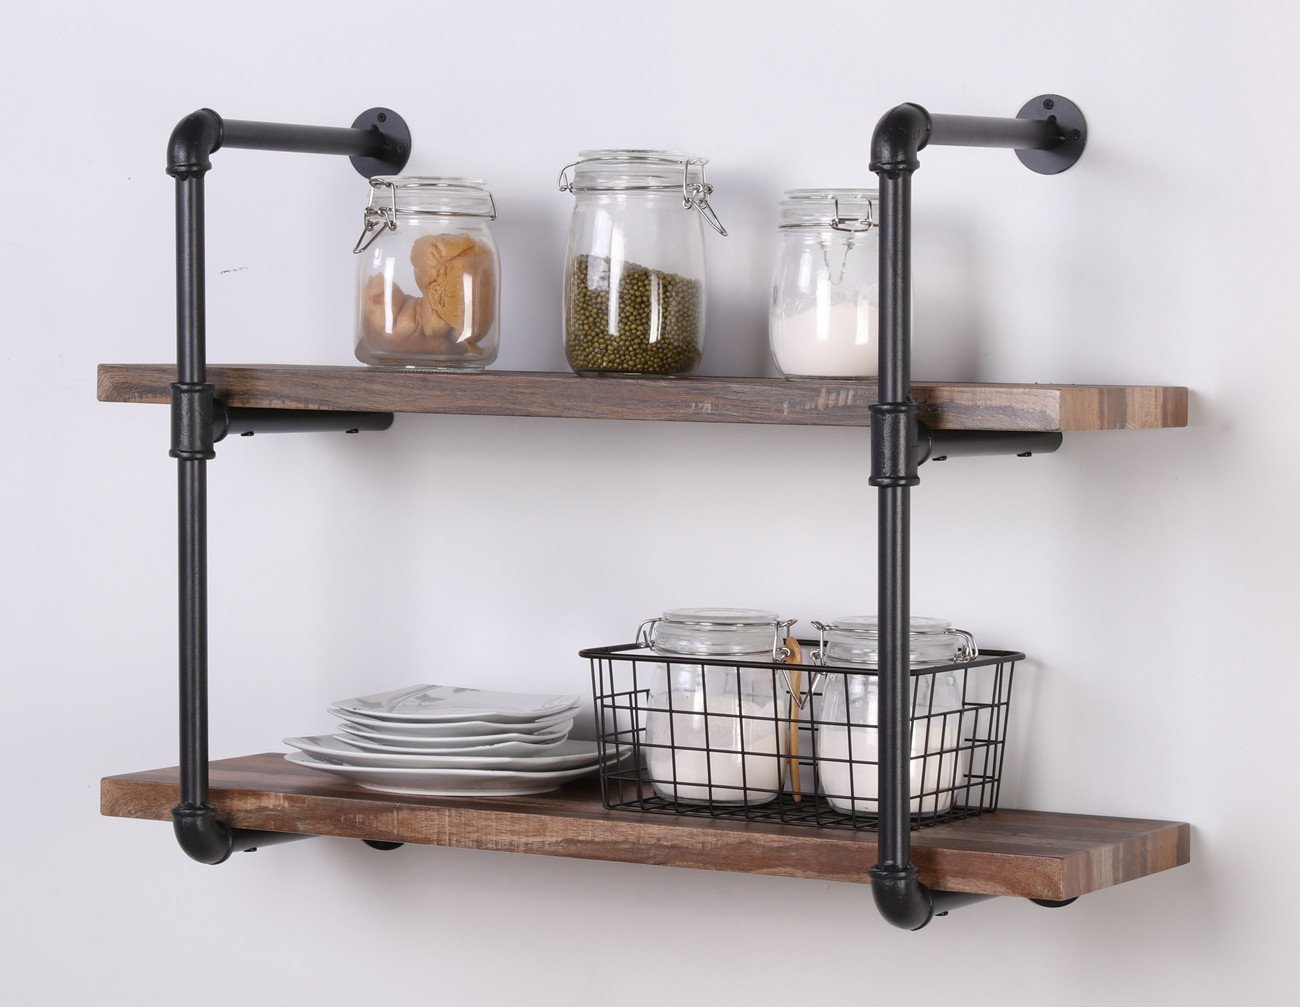 Best Kitchen Wall Shelves - Top 10 Wall Mounted Storage, Shelving ...